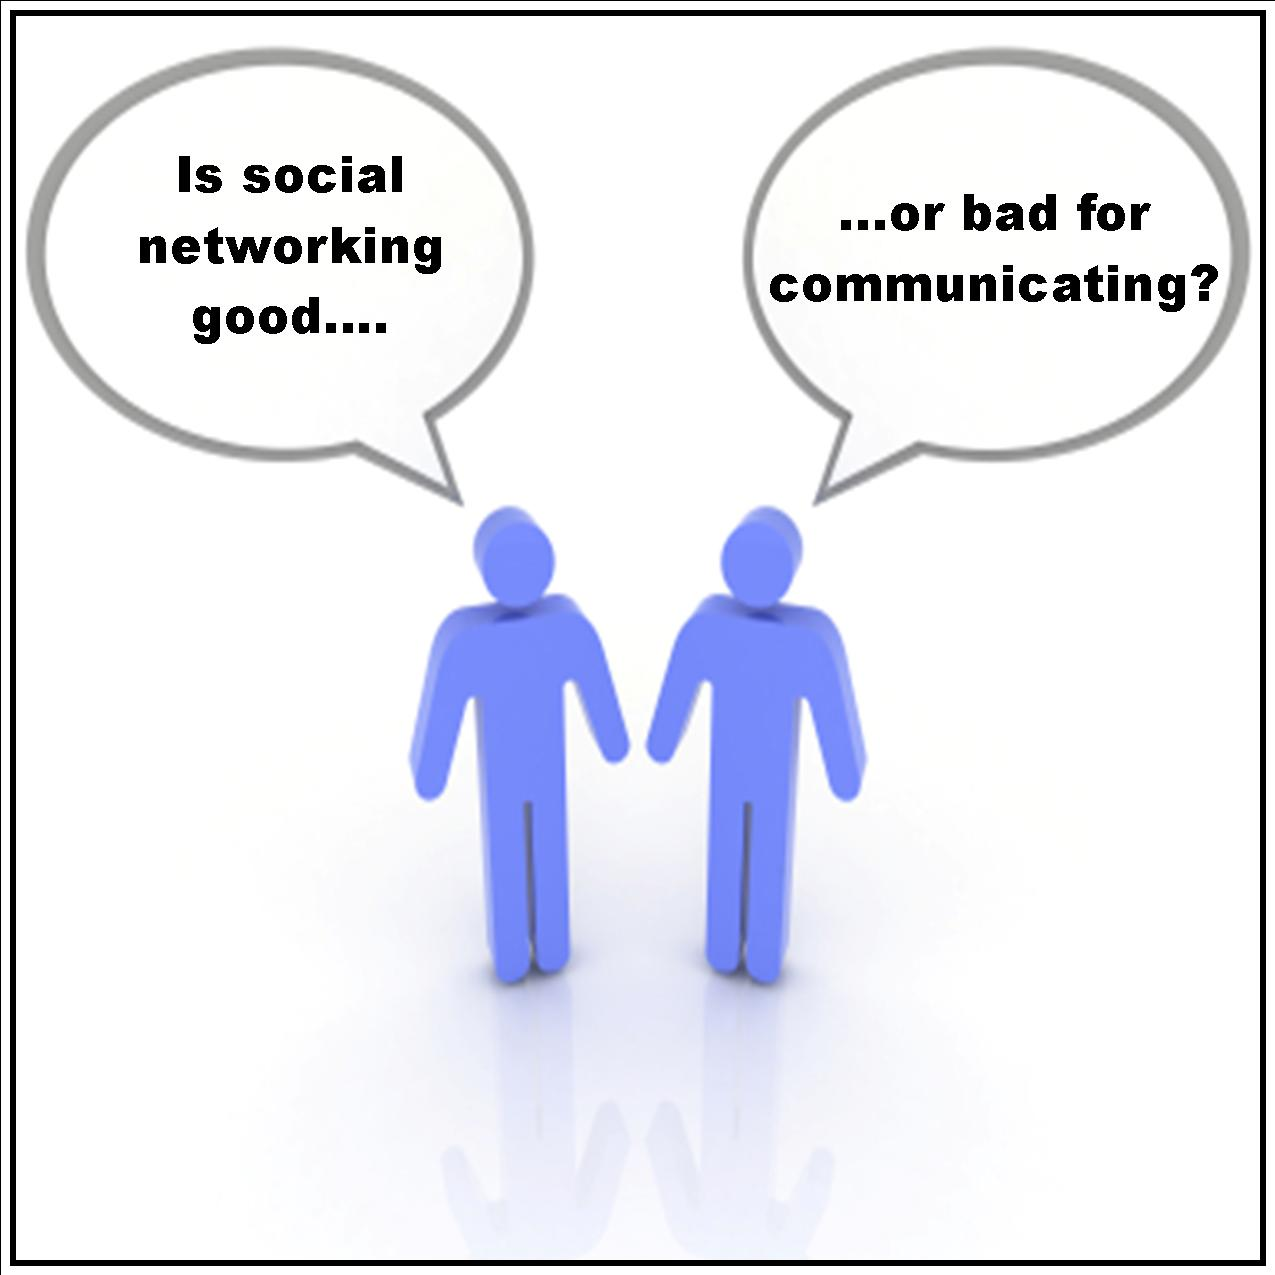 social networking sites beneficial or not Social networking sites are an essential part of everyday life but whether they are good for relationships and society as a whole is debatable through objective.